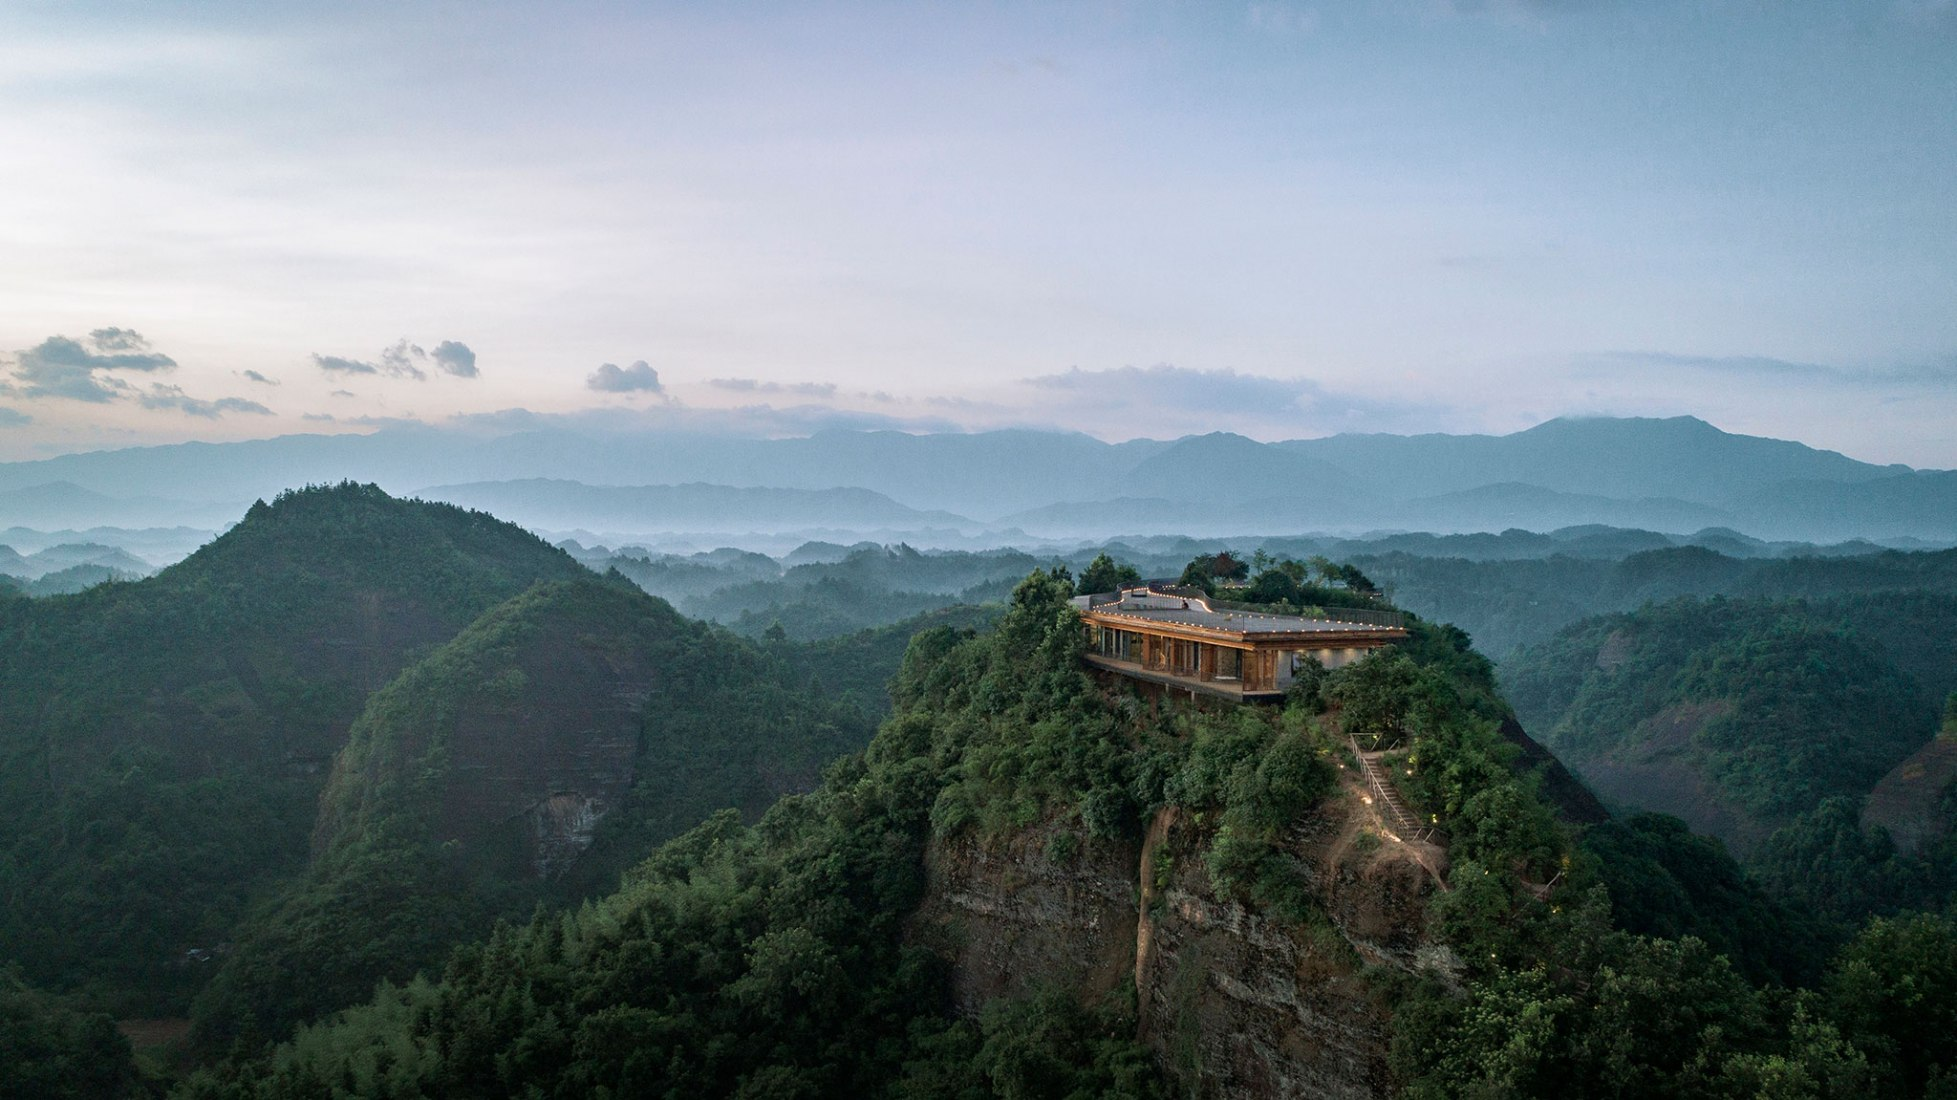 Eagle Rock Cliffs hotel by Duoxiangjie Architectural Design. Image courtesy of Duoxiangjie Architectural Design. Photograph by Jin Weiqi.